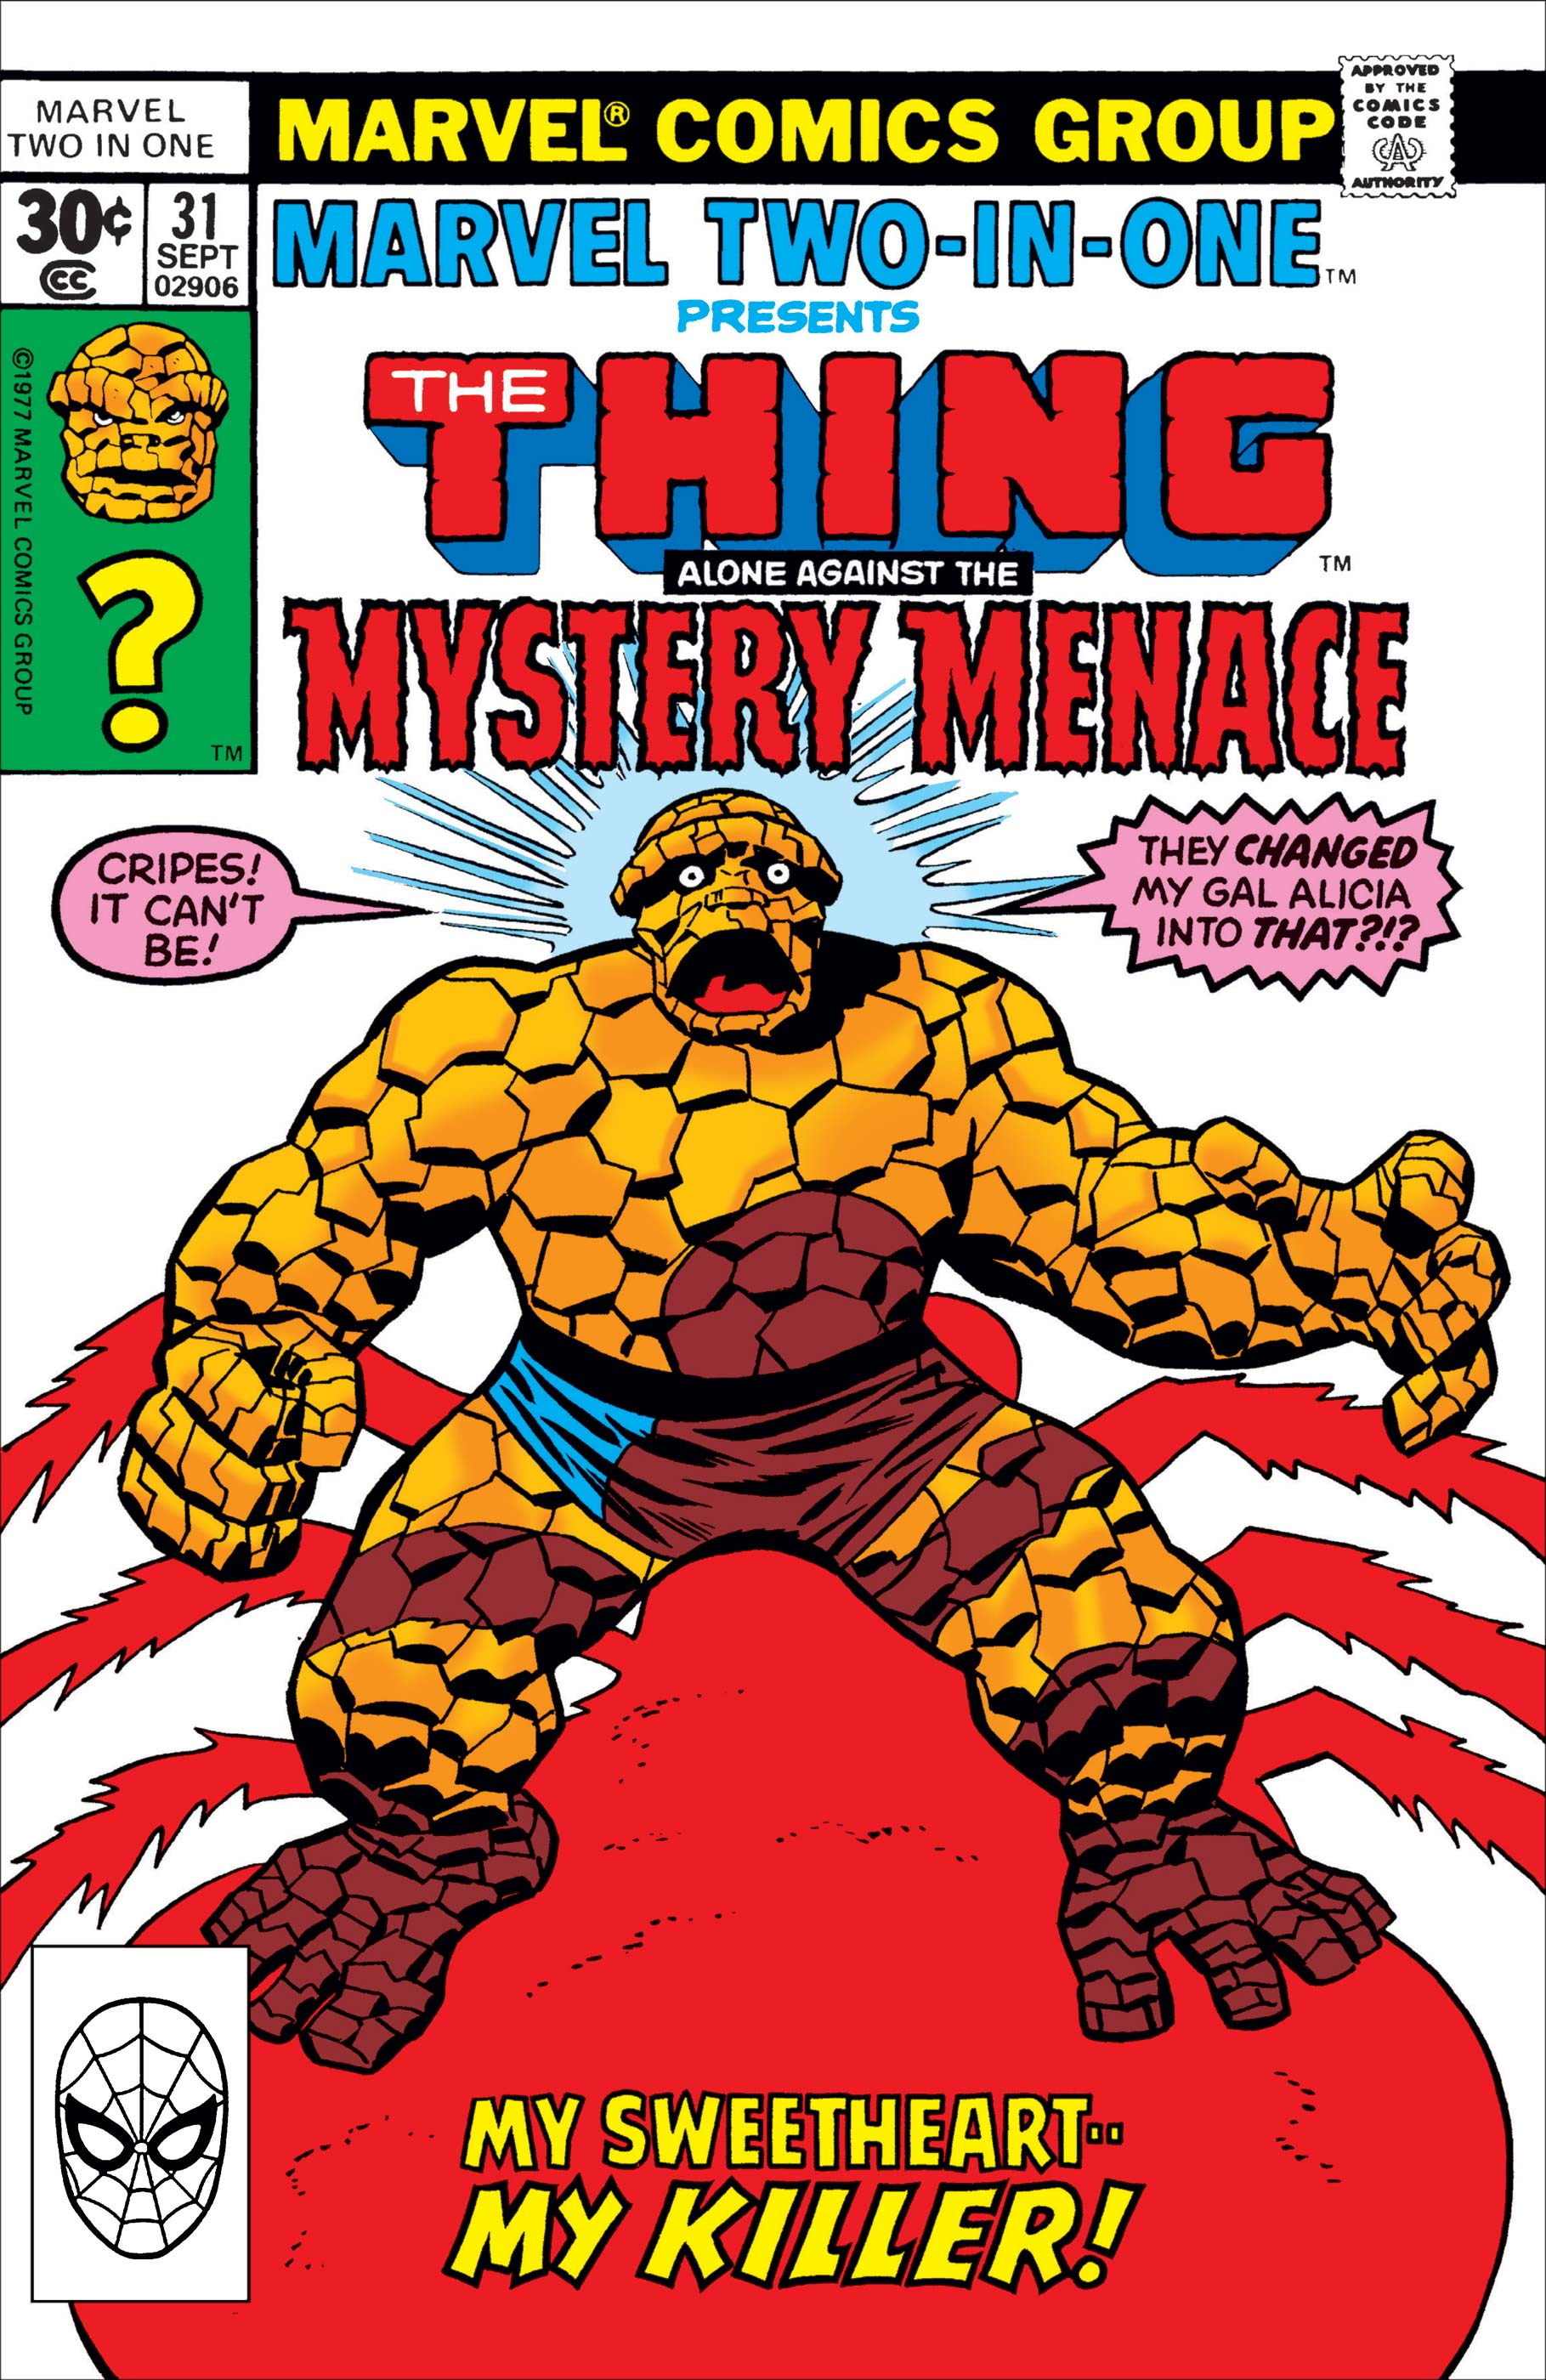 Marvel Two-in-One (1974) #31